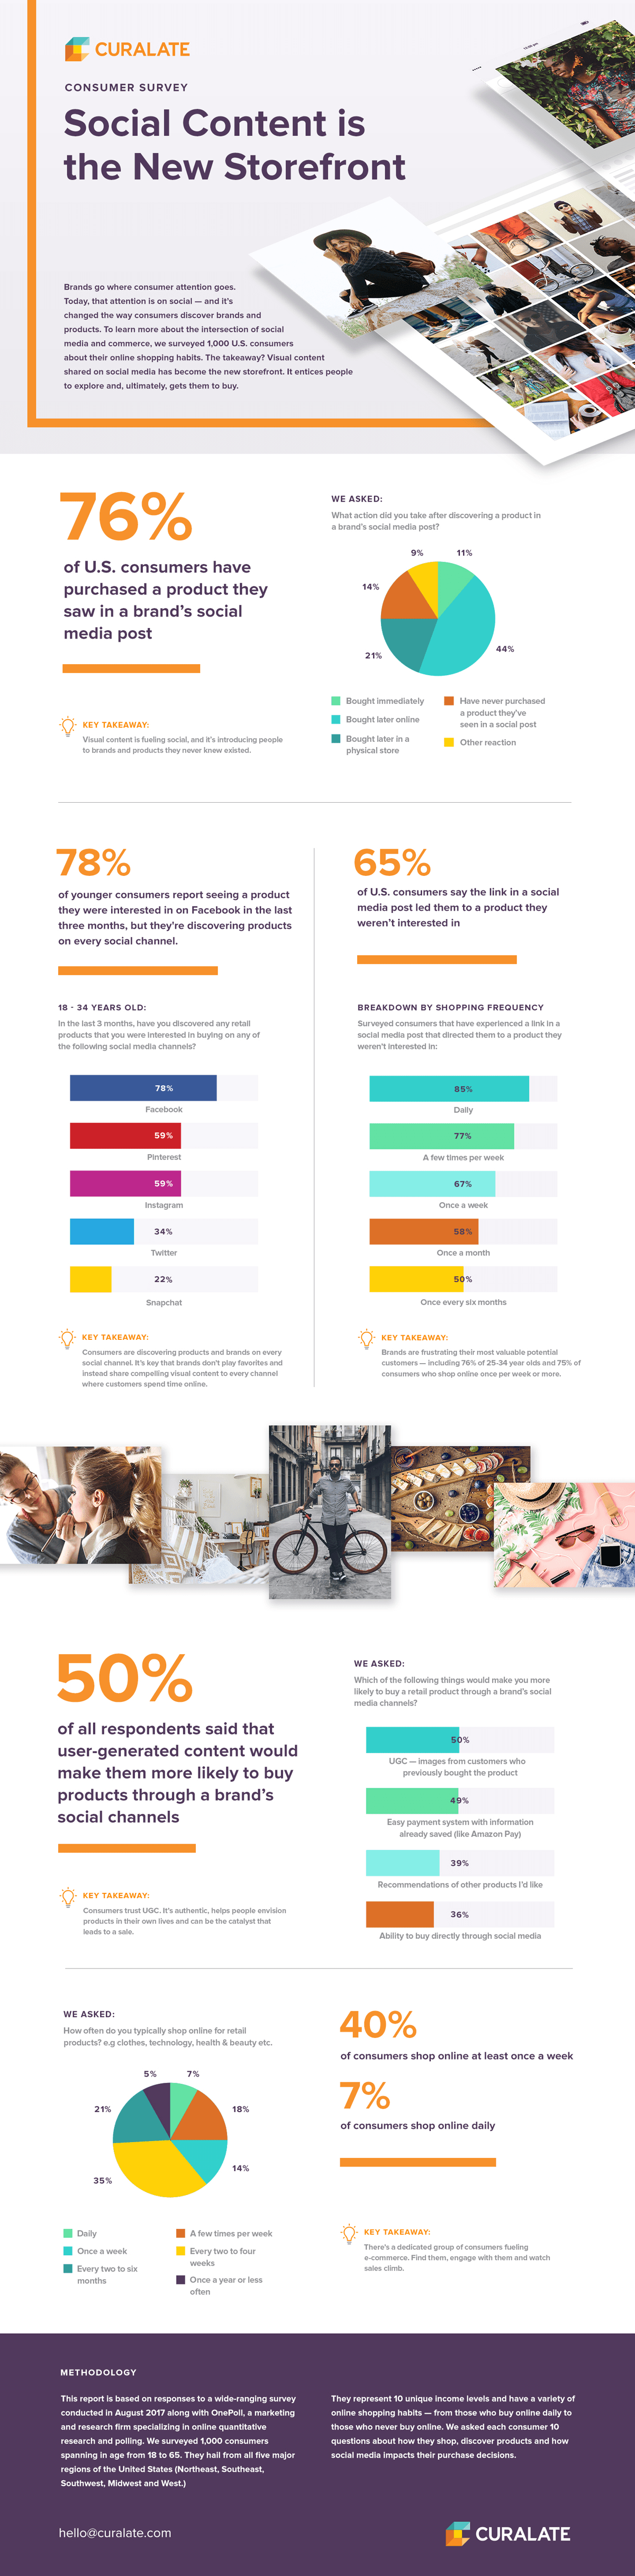 Curalate_ConsumerSurvey_Infographic